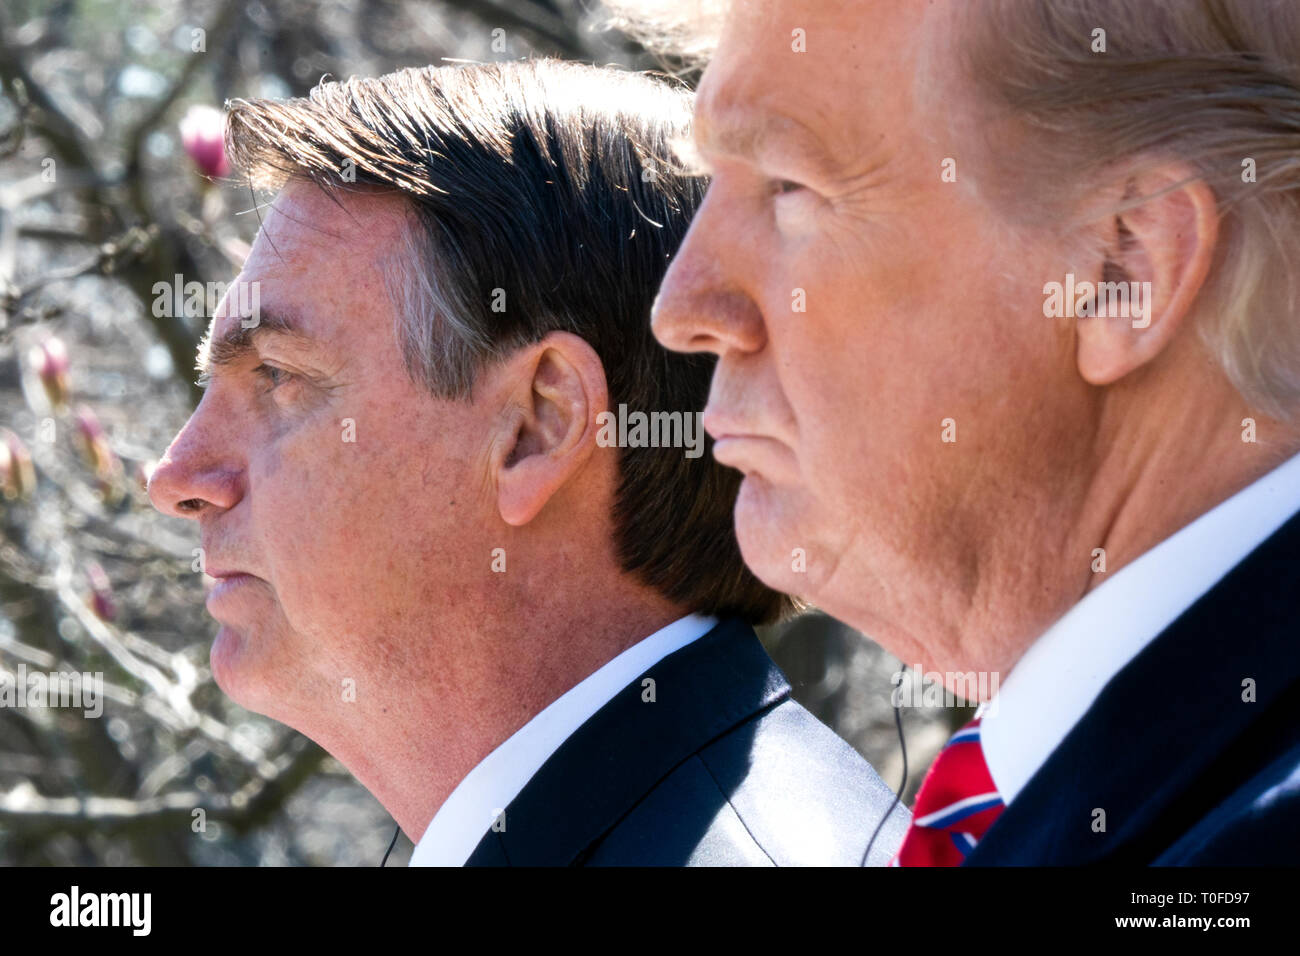 US President Donald J. Trump (R) and Brazilian President Jair Bolsonaro (L) attend a press conference in the Rose Garden of the White House in Washington, DC, USA, 19 March 2019. Bolsonaro, a right-wing nationalist, earned the nickname the 'Trump of the Tropics.' Credit: Jim LoScalzo / Pool via CNP /MediaPunch - Stock Image